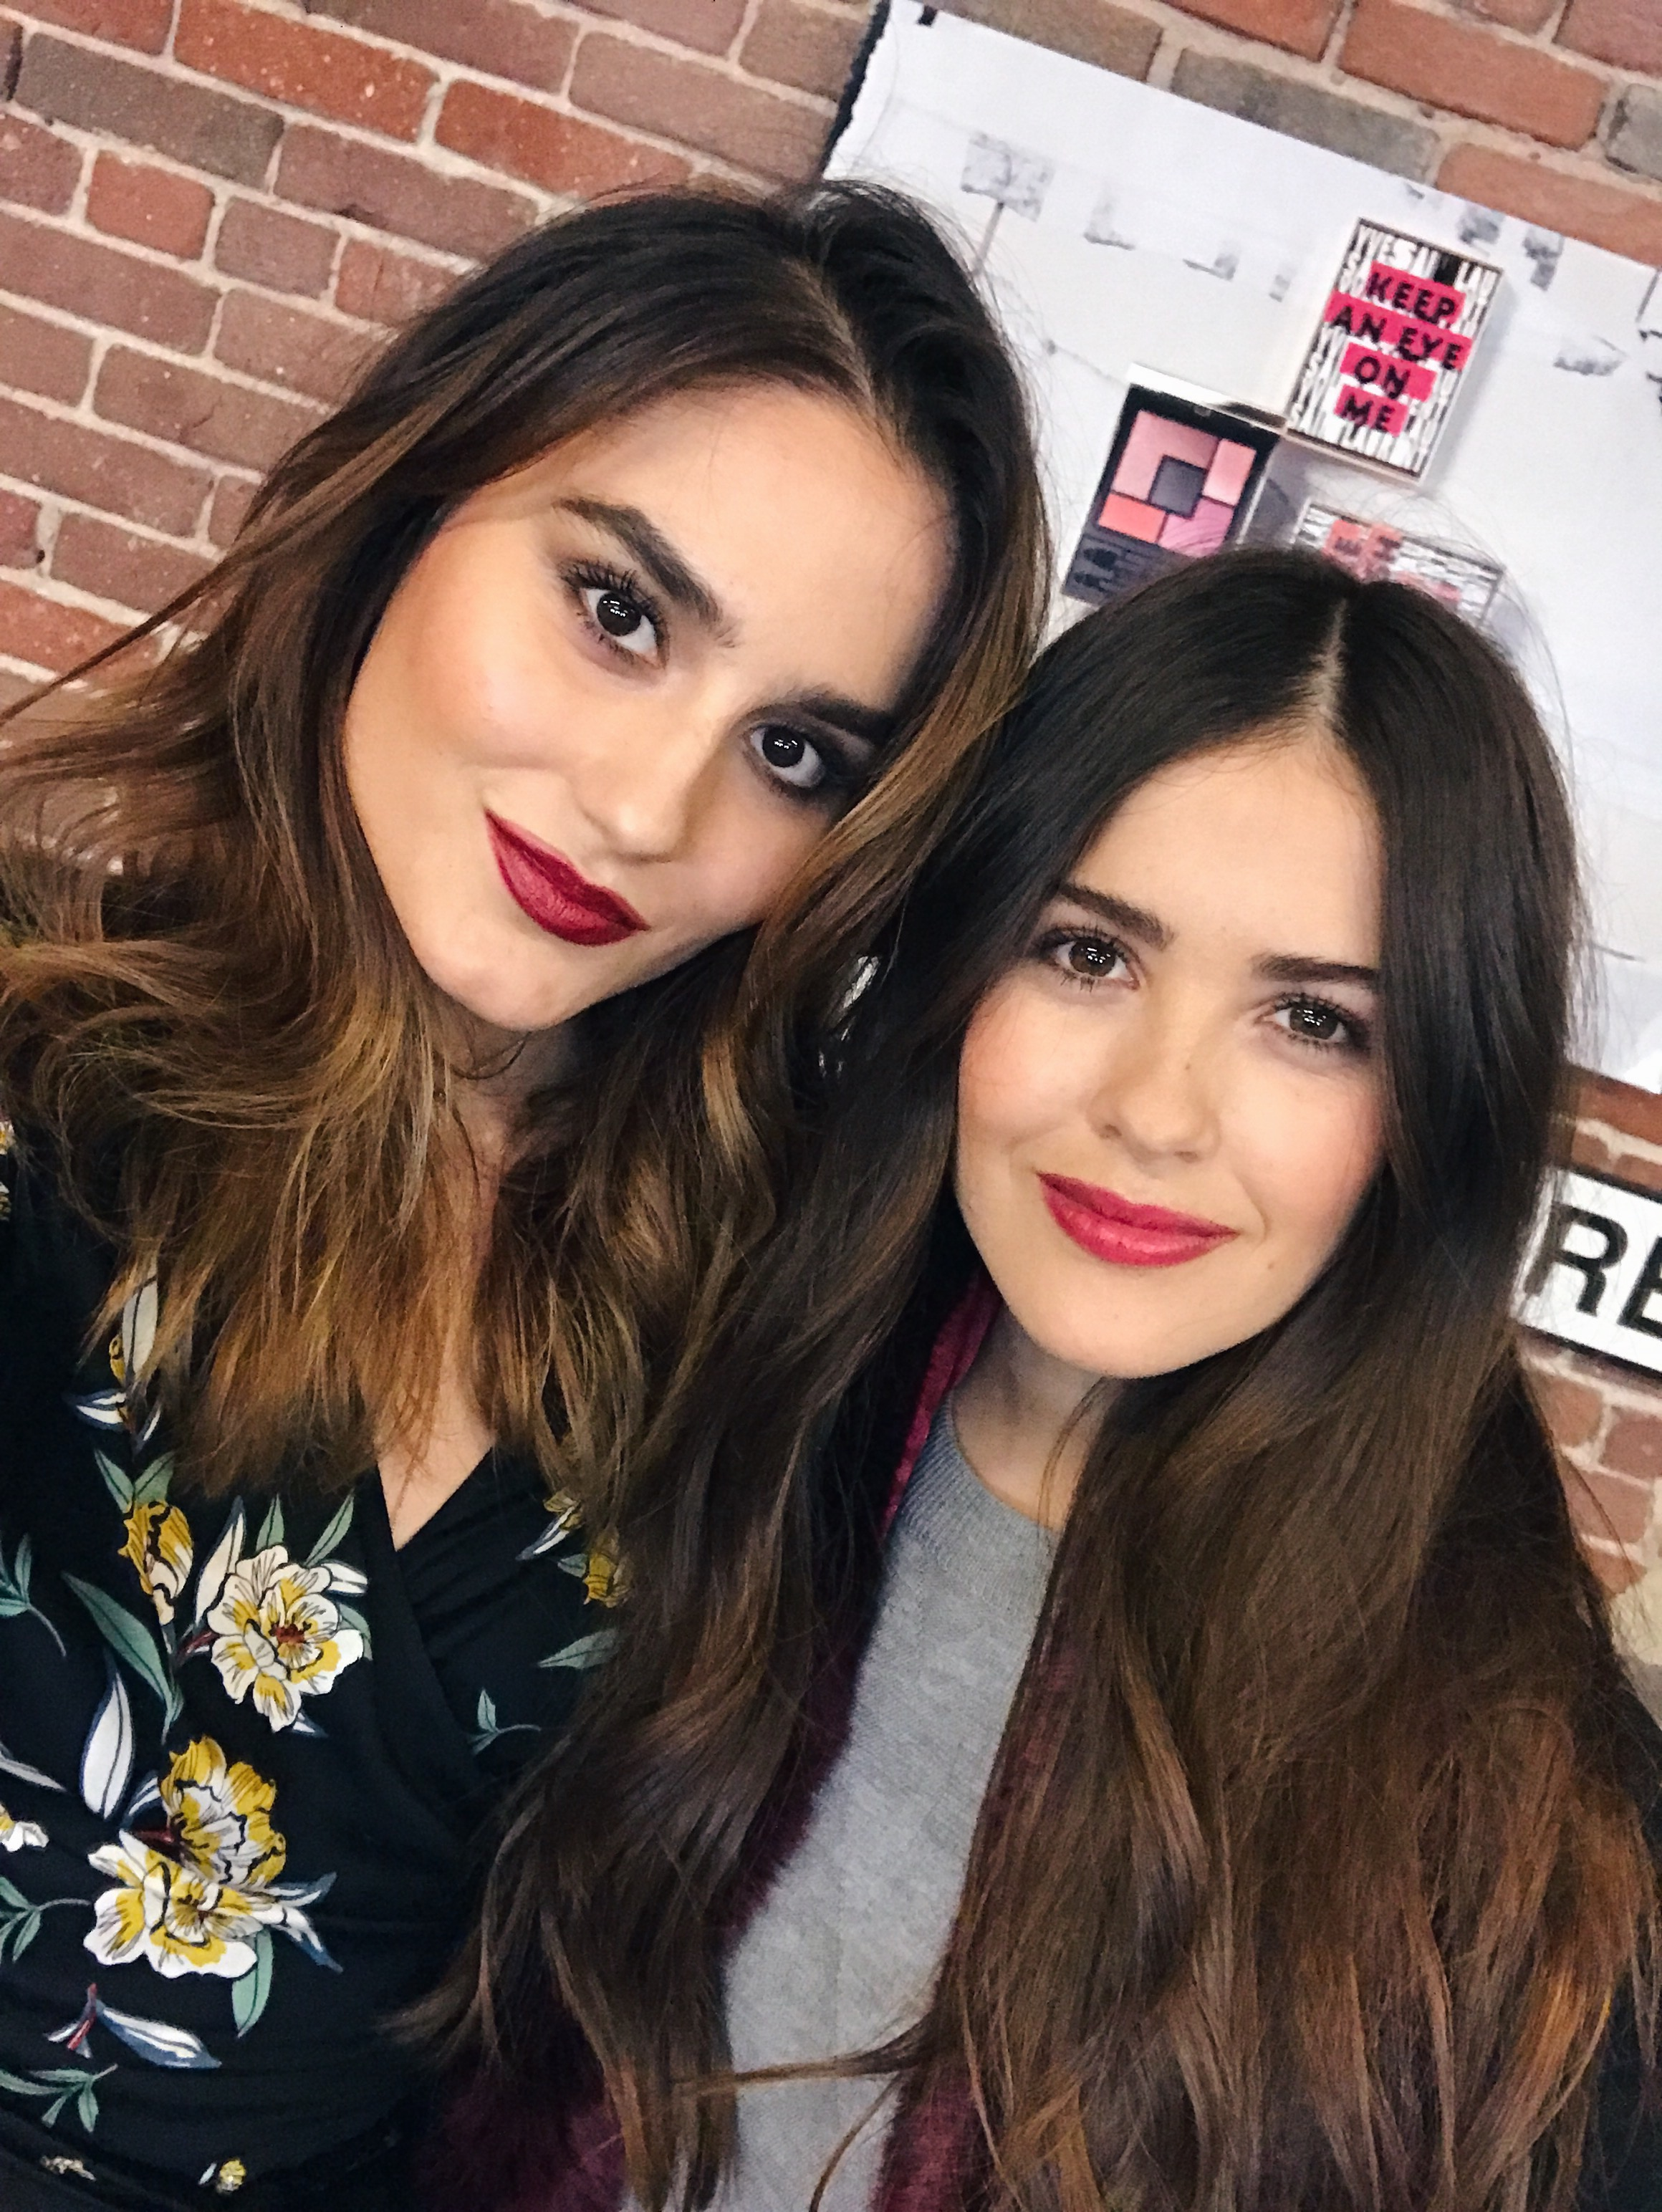 With the cutest Paola Alberdi